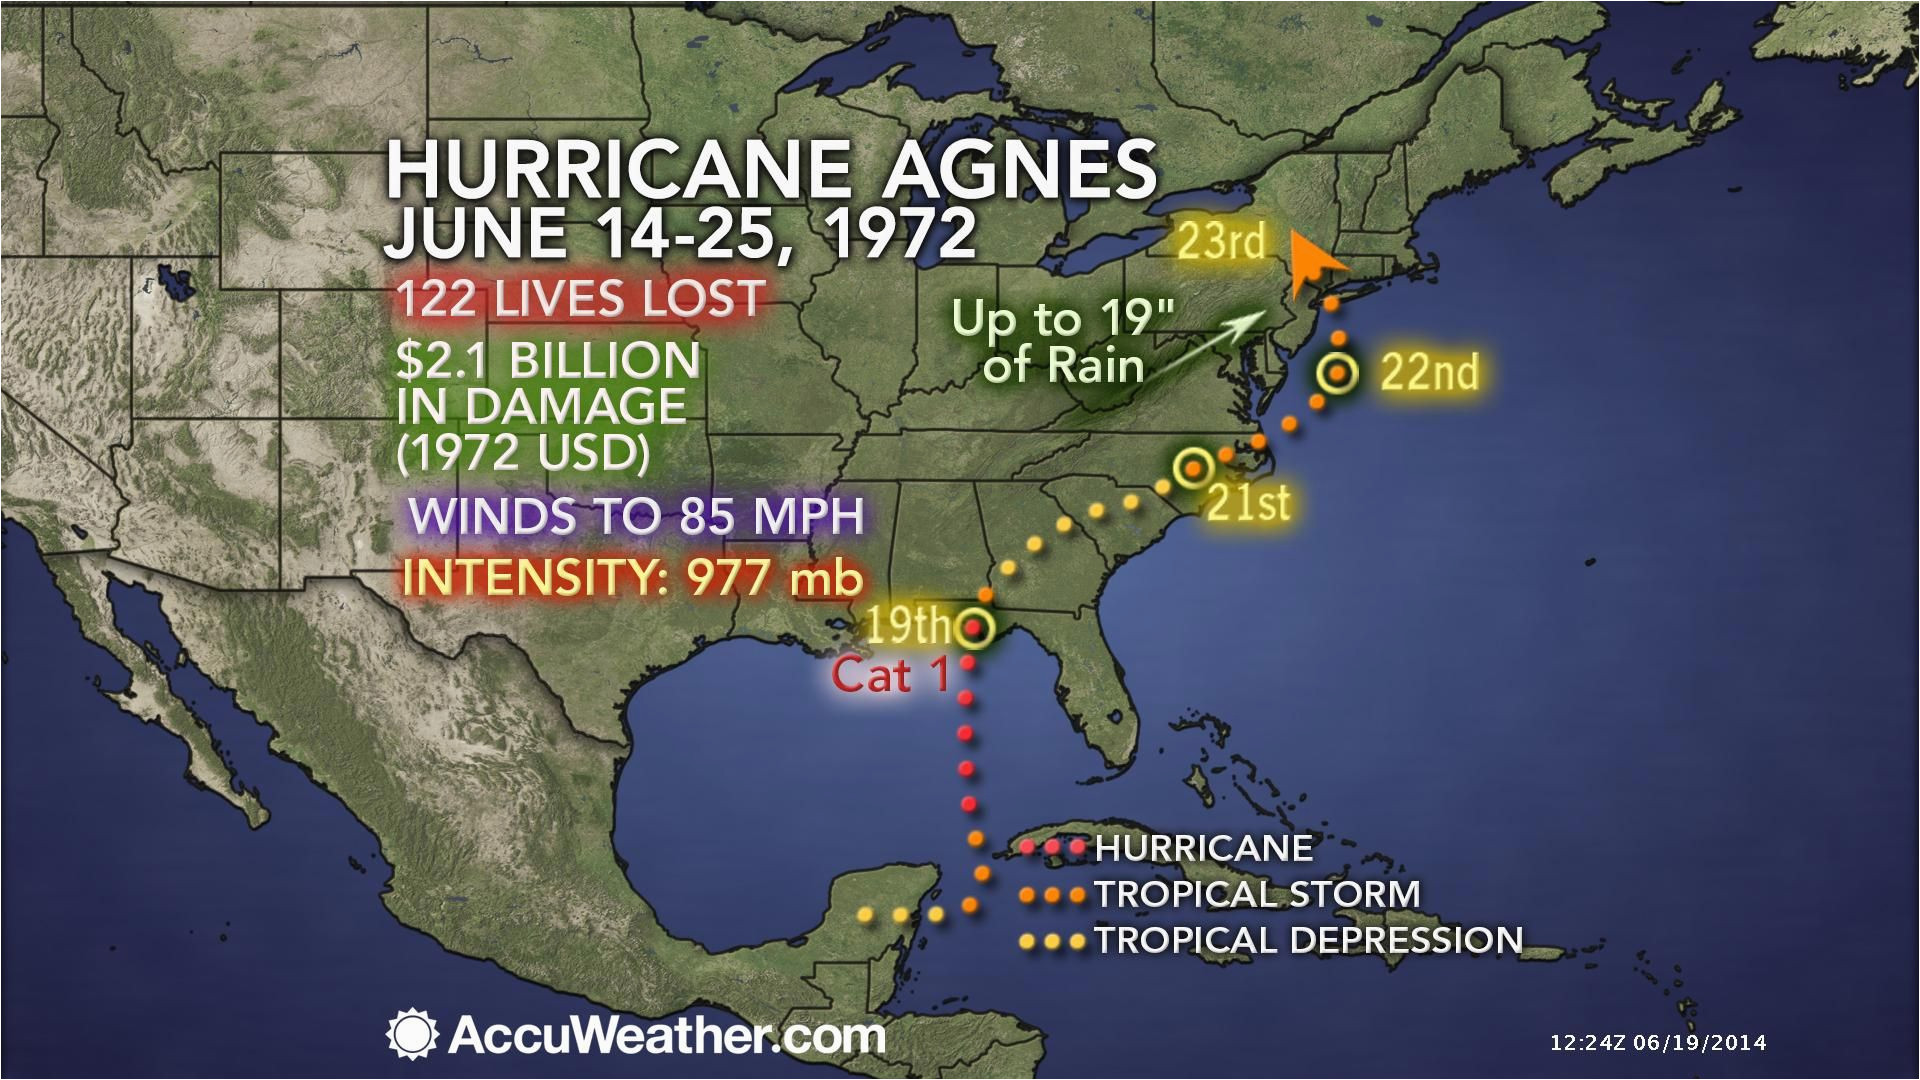 from accuweather during late june 1972 hurricane agnes